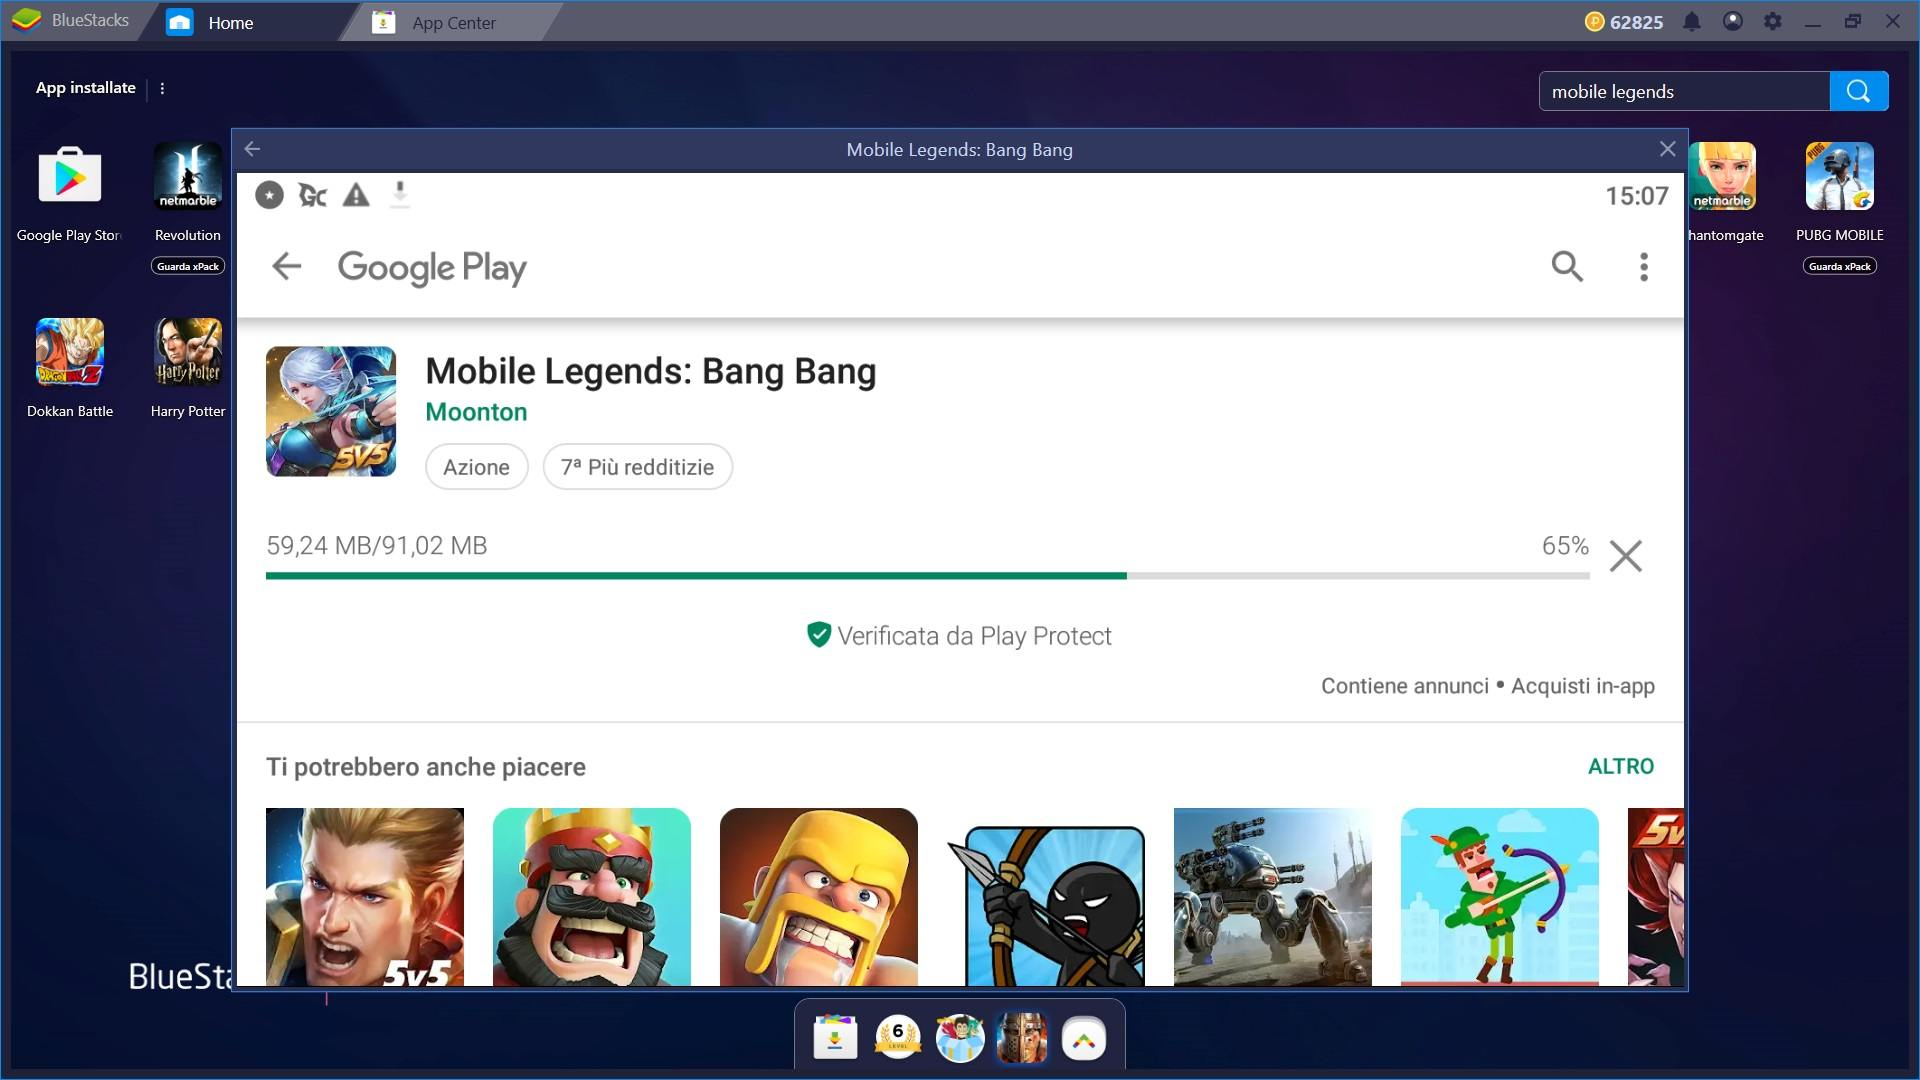 Gioca con Bluestacks a Mobile Legends: Bang Bang